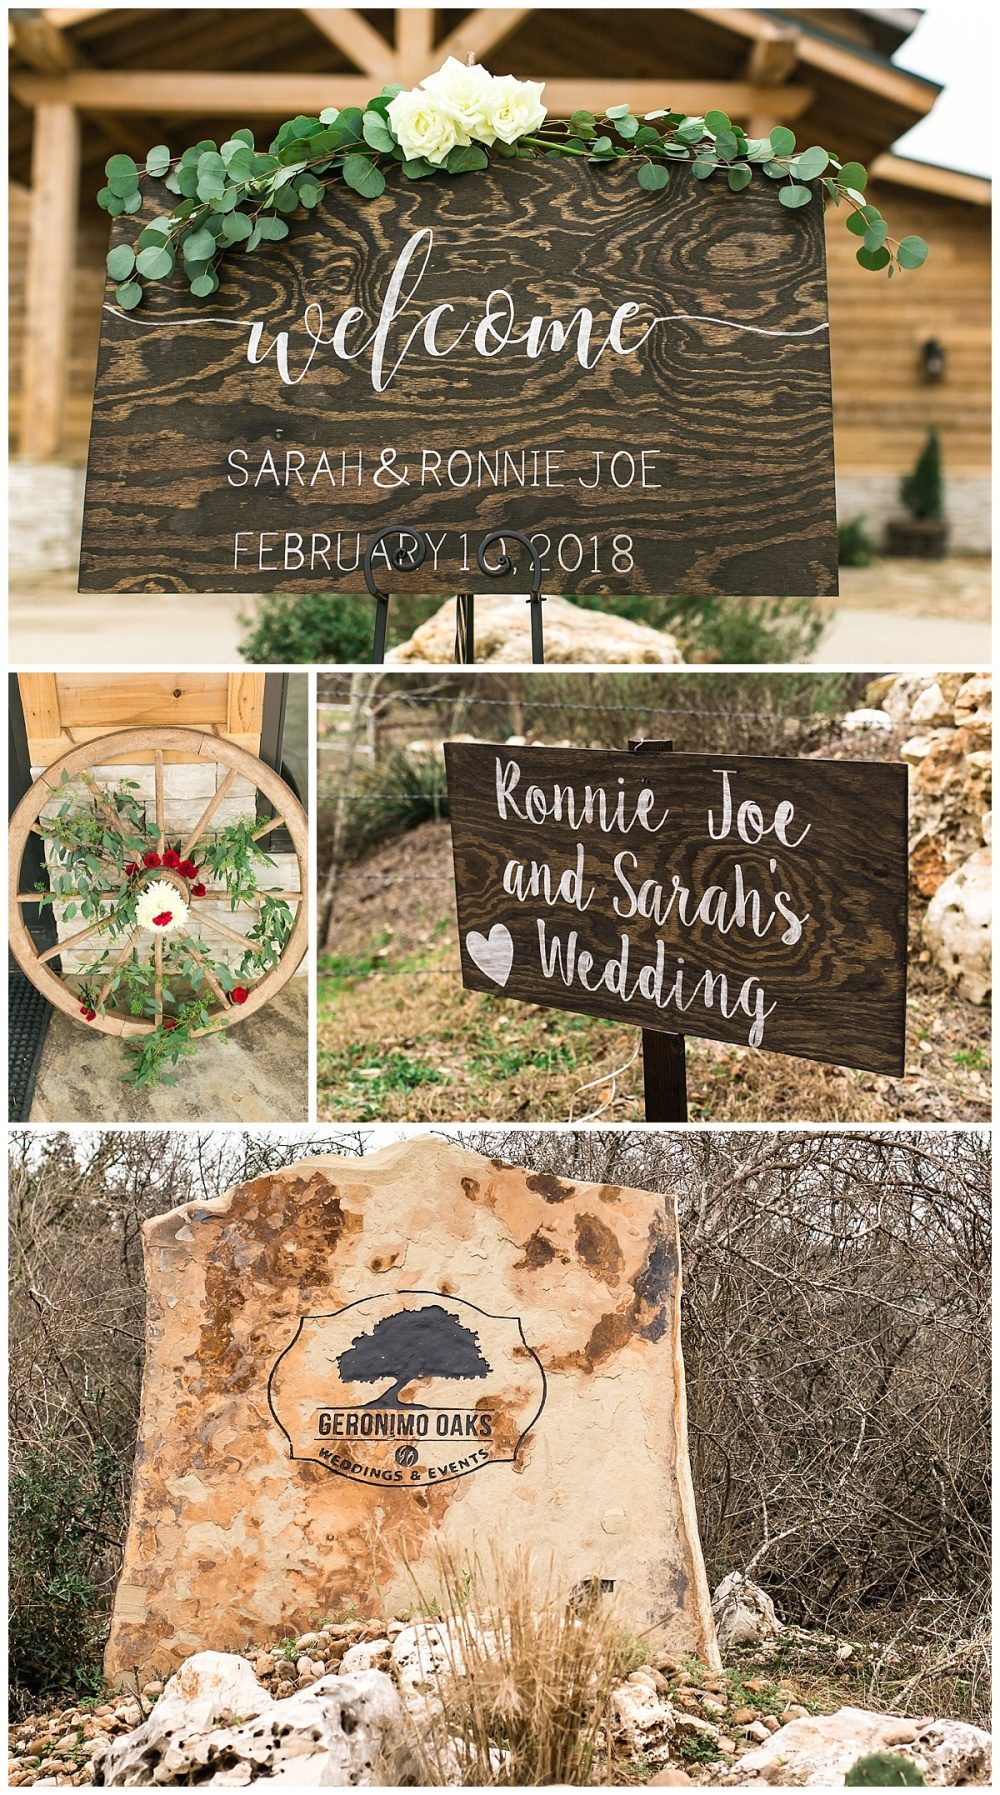 Carly-Barton-Photography-Geronimo-Oaks-Wedding-Venue-Texas-Hill-Country-Ronnie-Sarah_0075.jpg